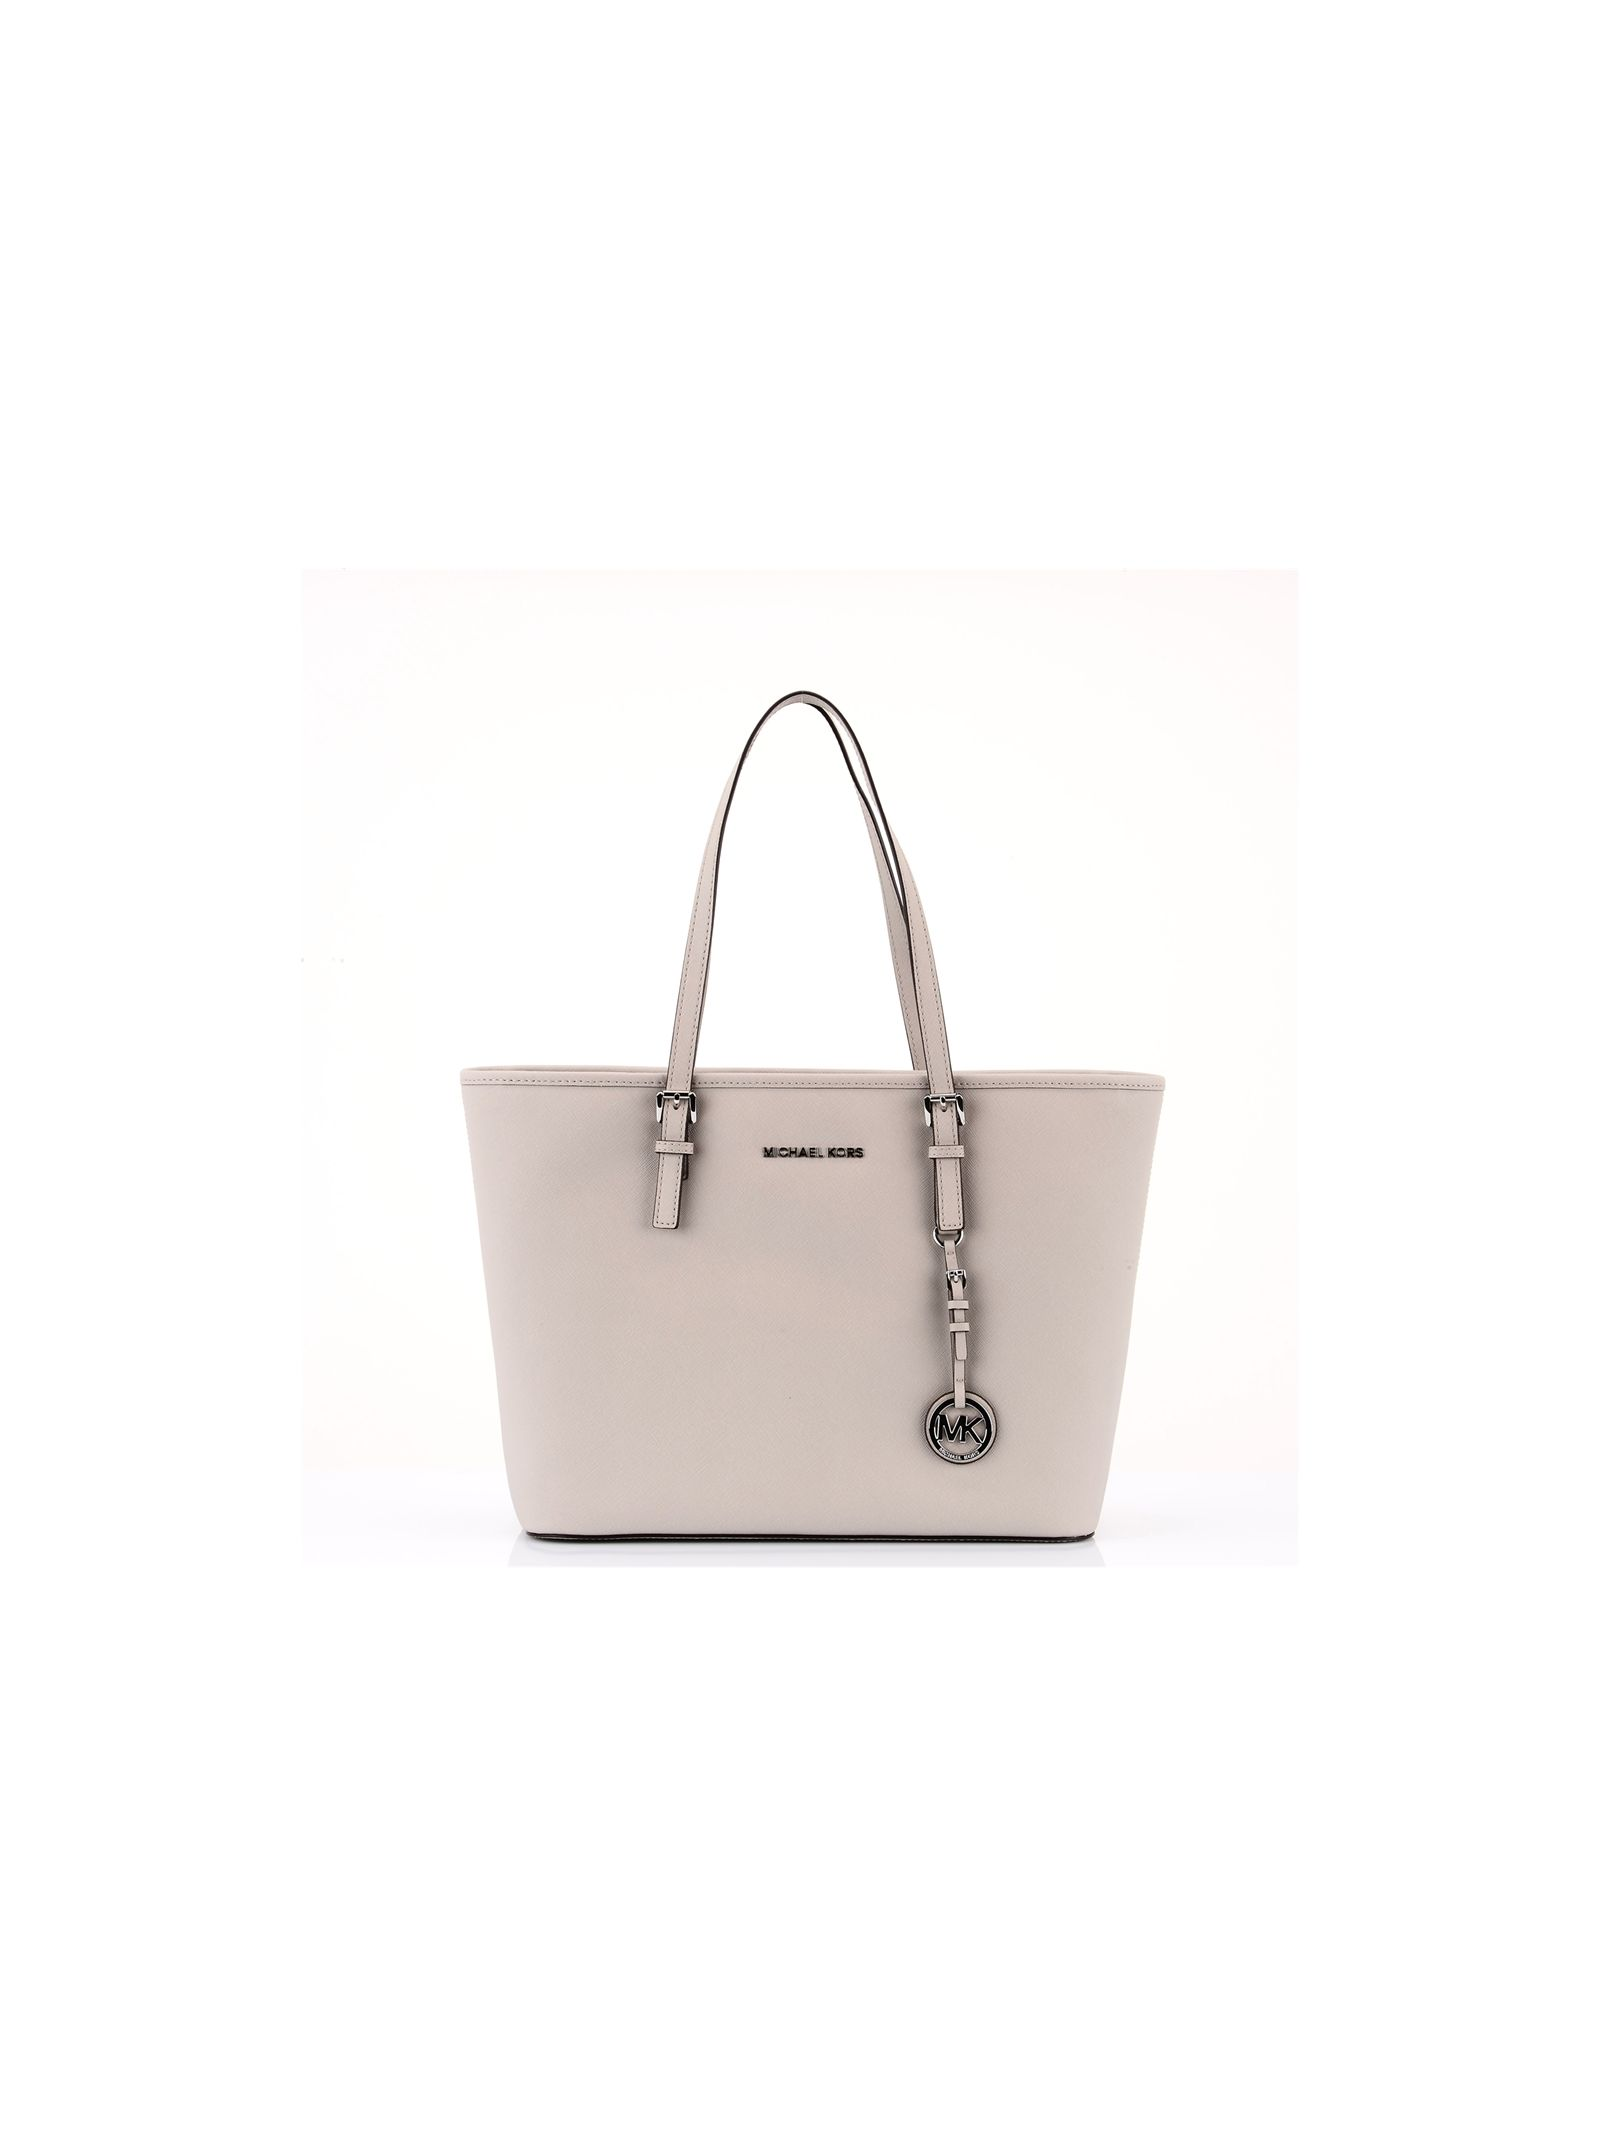 michael kors female  michael kors jet set travel tote